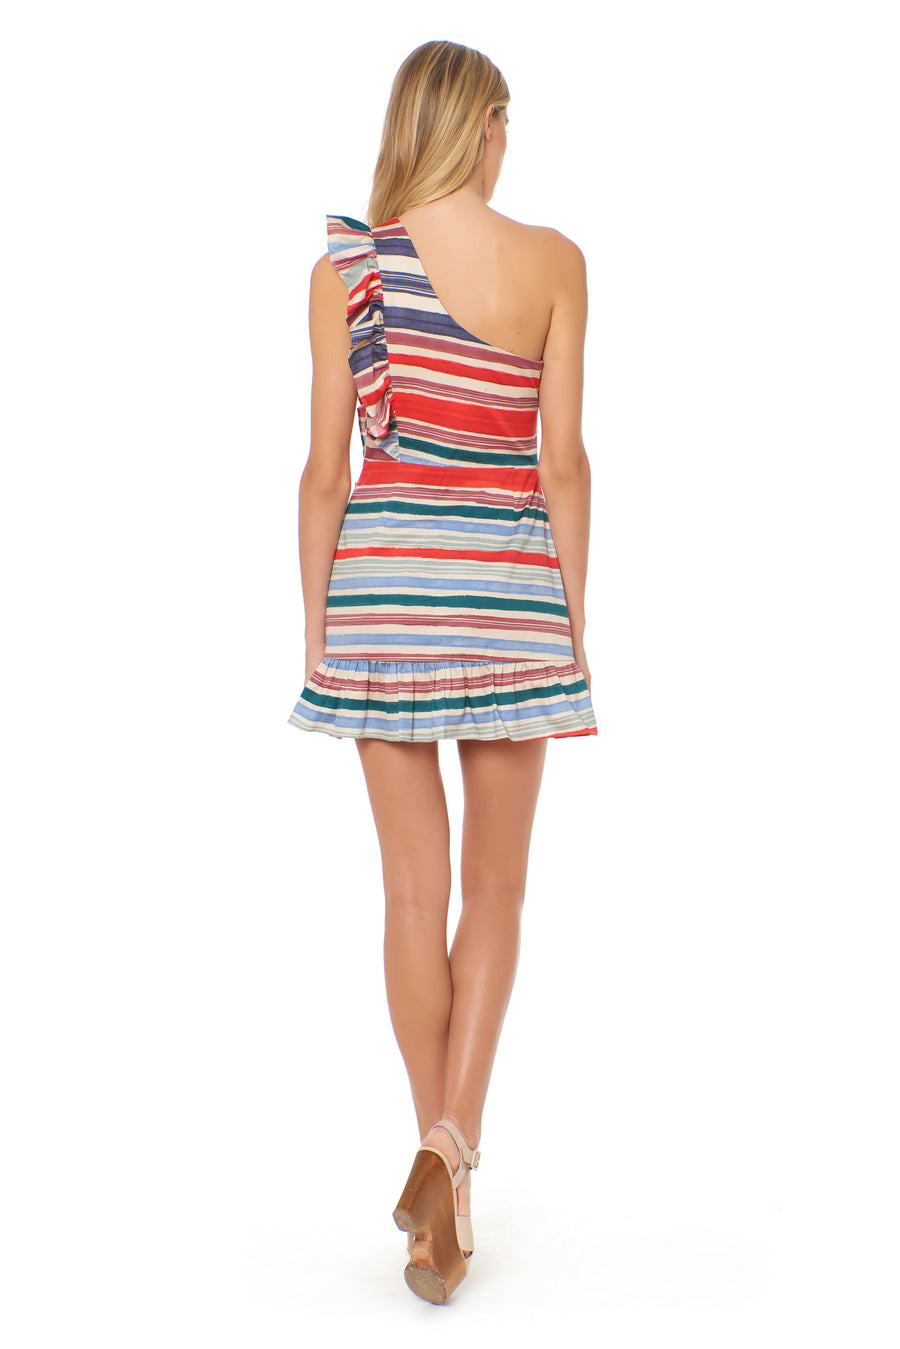 Miyah Dress - Zapata Stripe - Red Carter